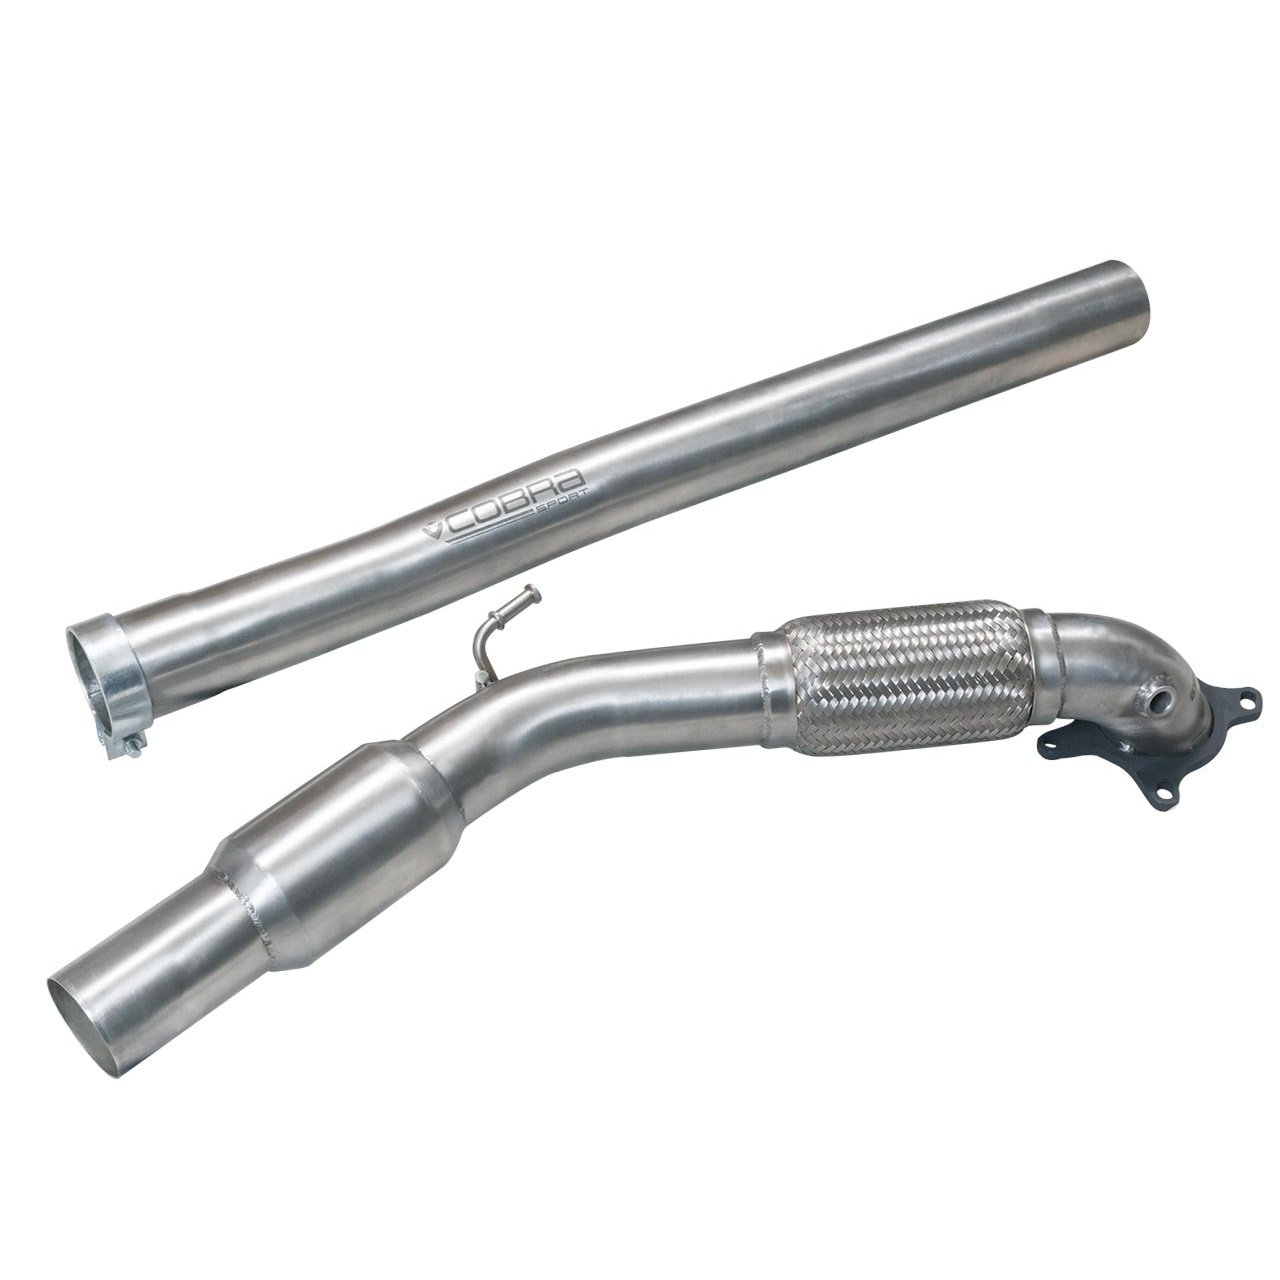 Audi A3 (8P) 2.0 TFSI 2WD (3 & 5 Door) Front Pipe Sports Cat / De-Cat Performance Exhaust